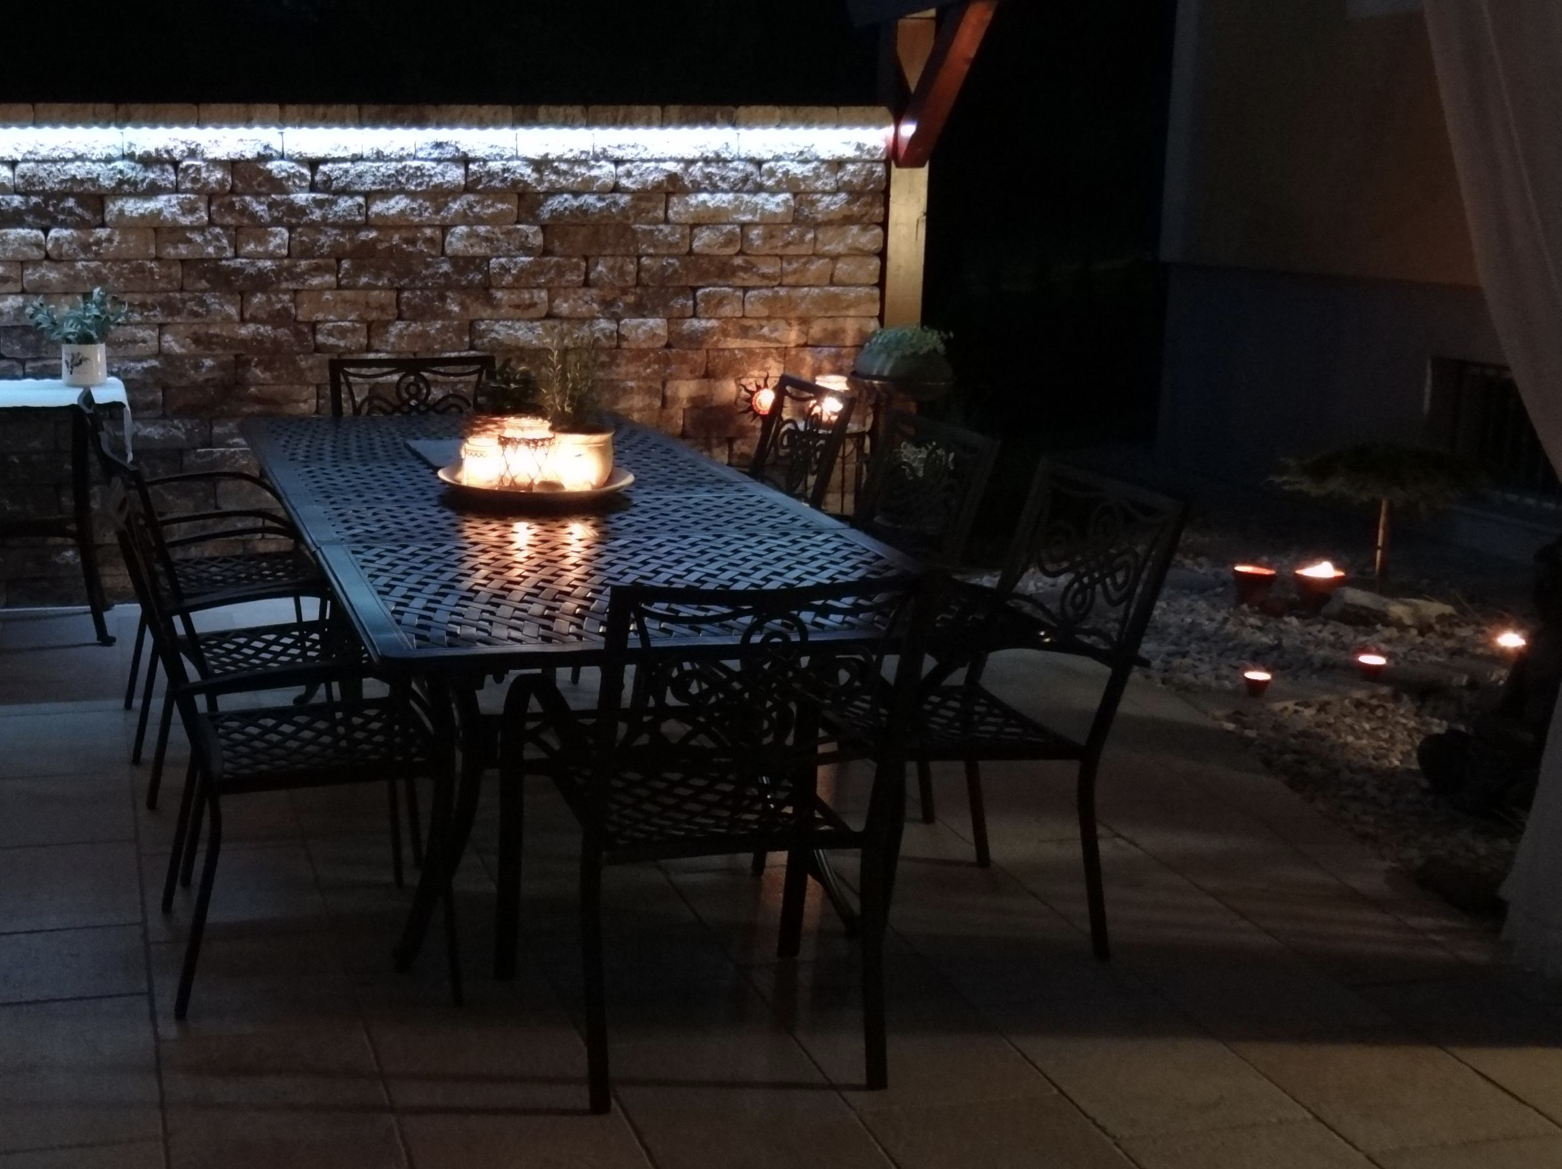 Garden Table with Candles